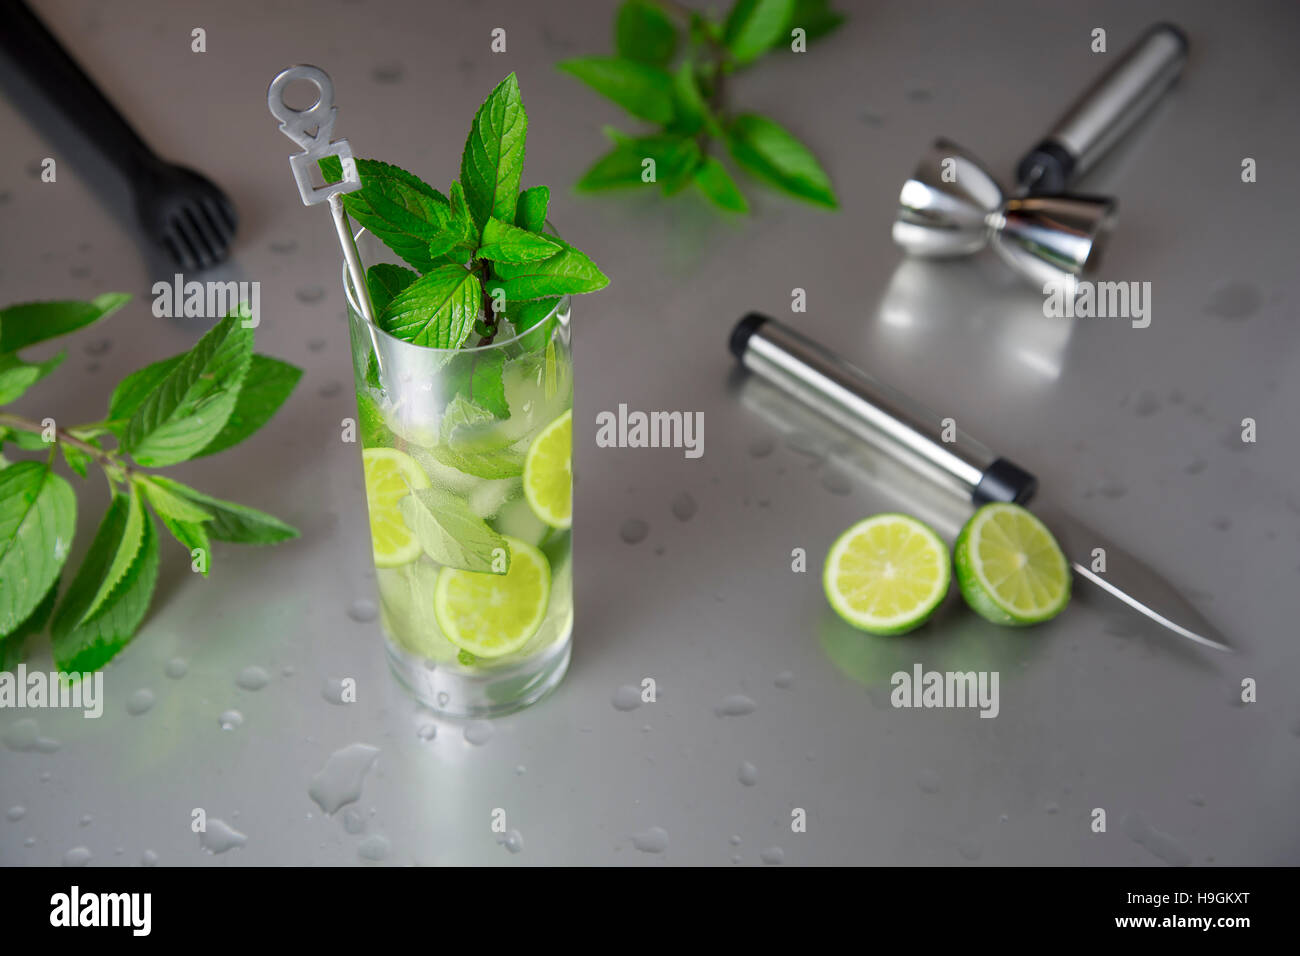 portrait of fresh mojito glass with barman tools - Stock Image